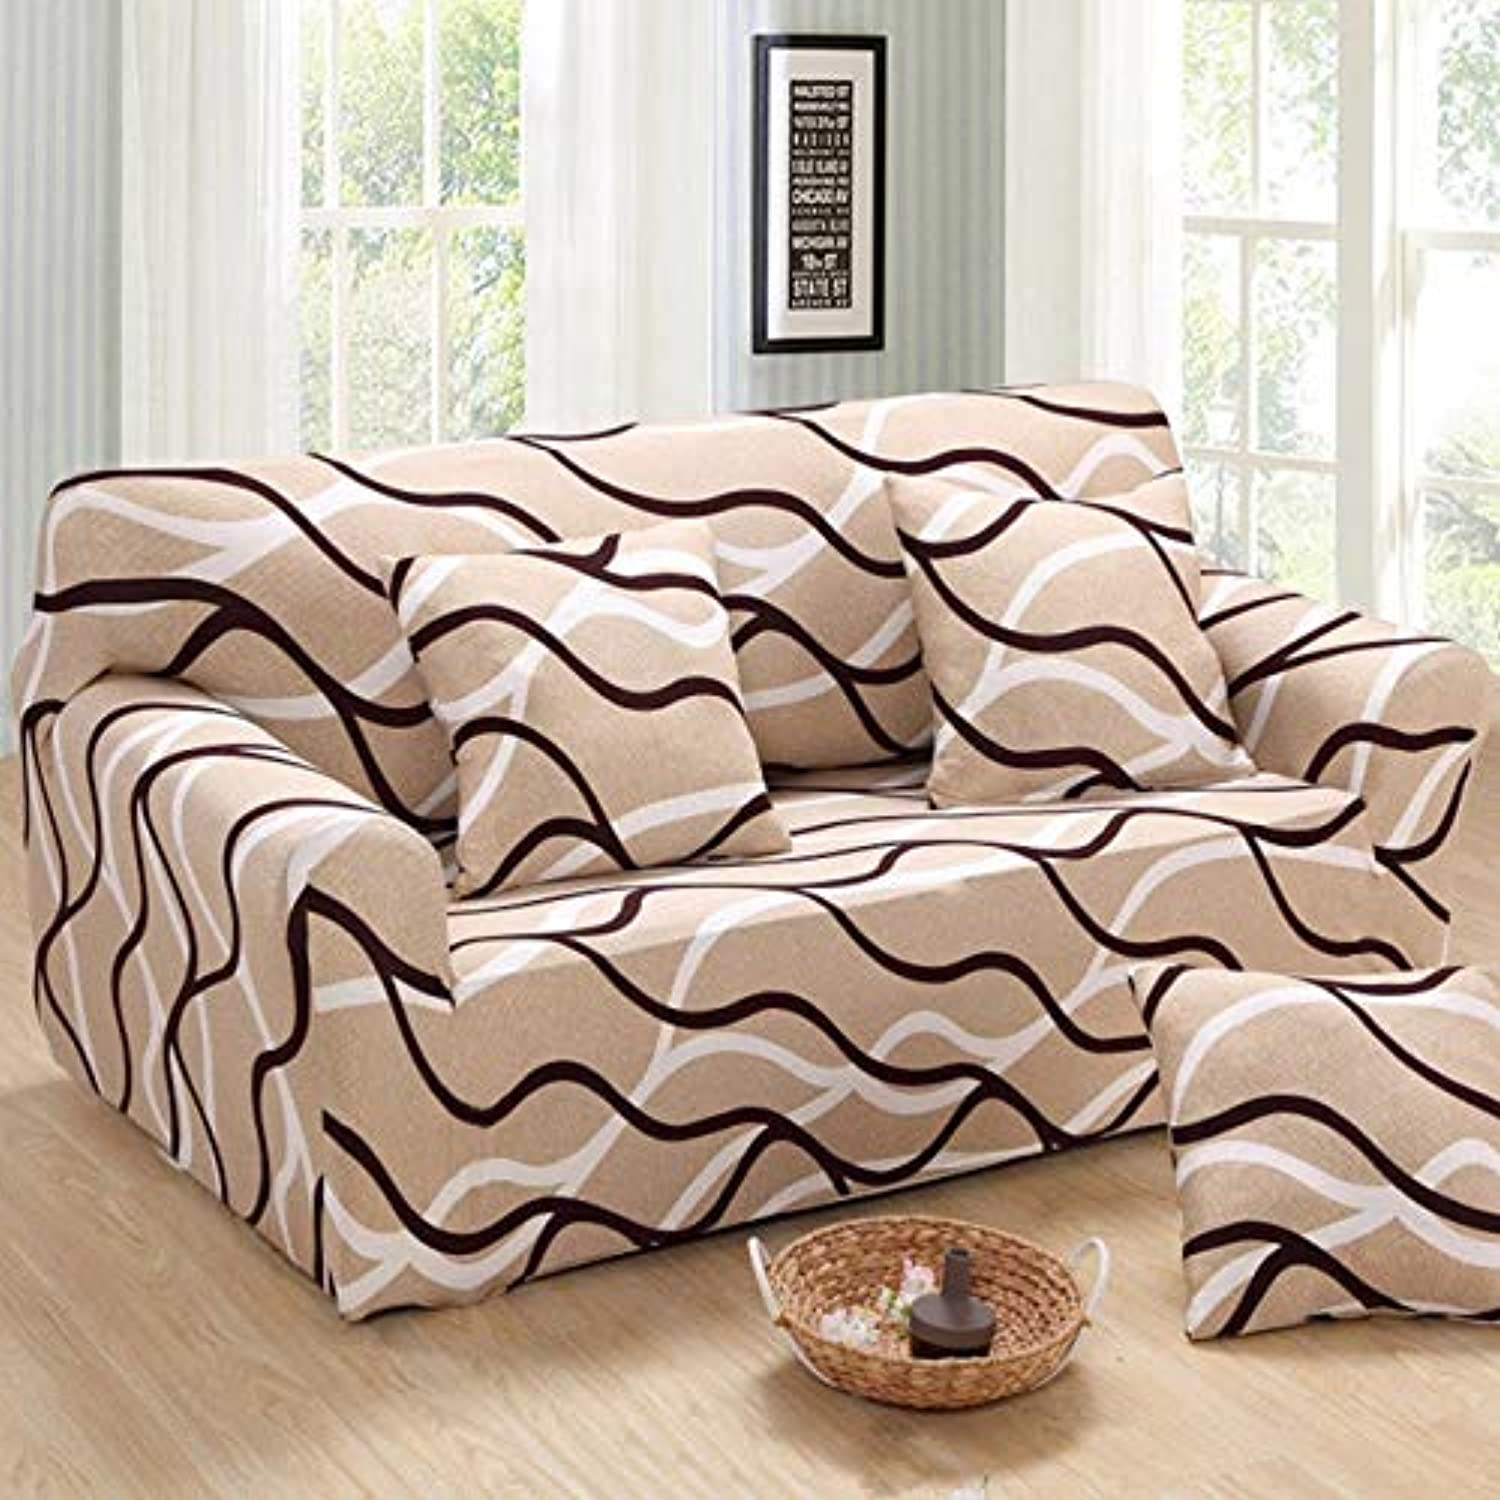 Universal Size color Sofa Cover Tight Wrap Couch Covers Printed Stretch Furniture Flexible slipcovers Sofa Towel sectional Home   5845, 2 seat 140-185cm